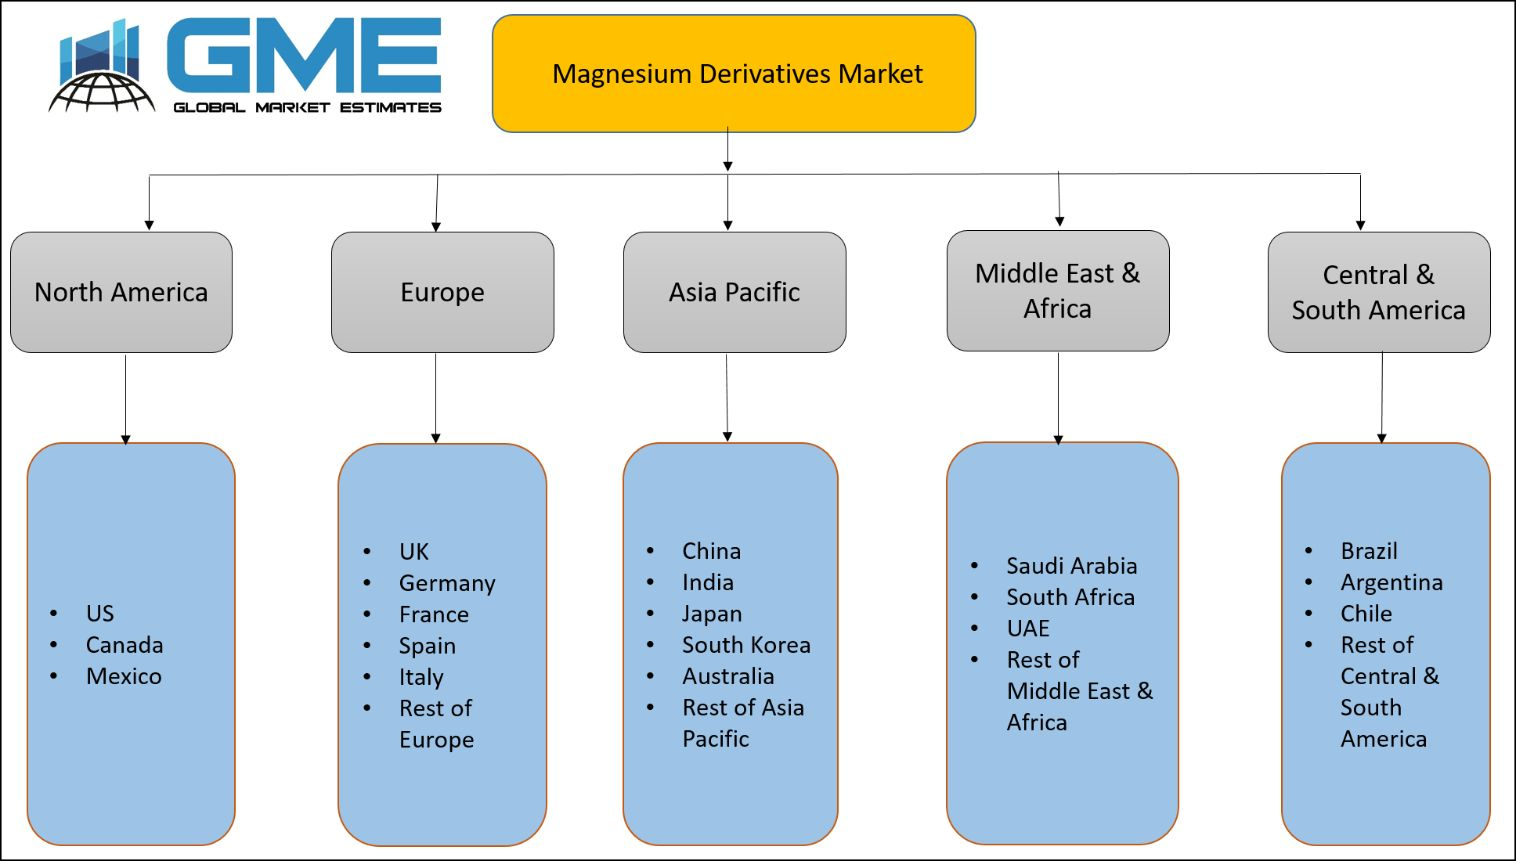 Magnesium Derivatives Market